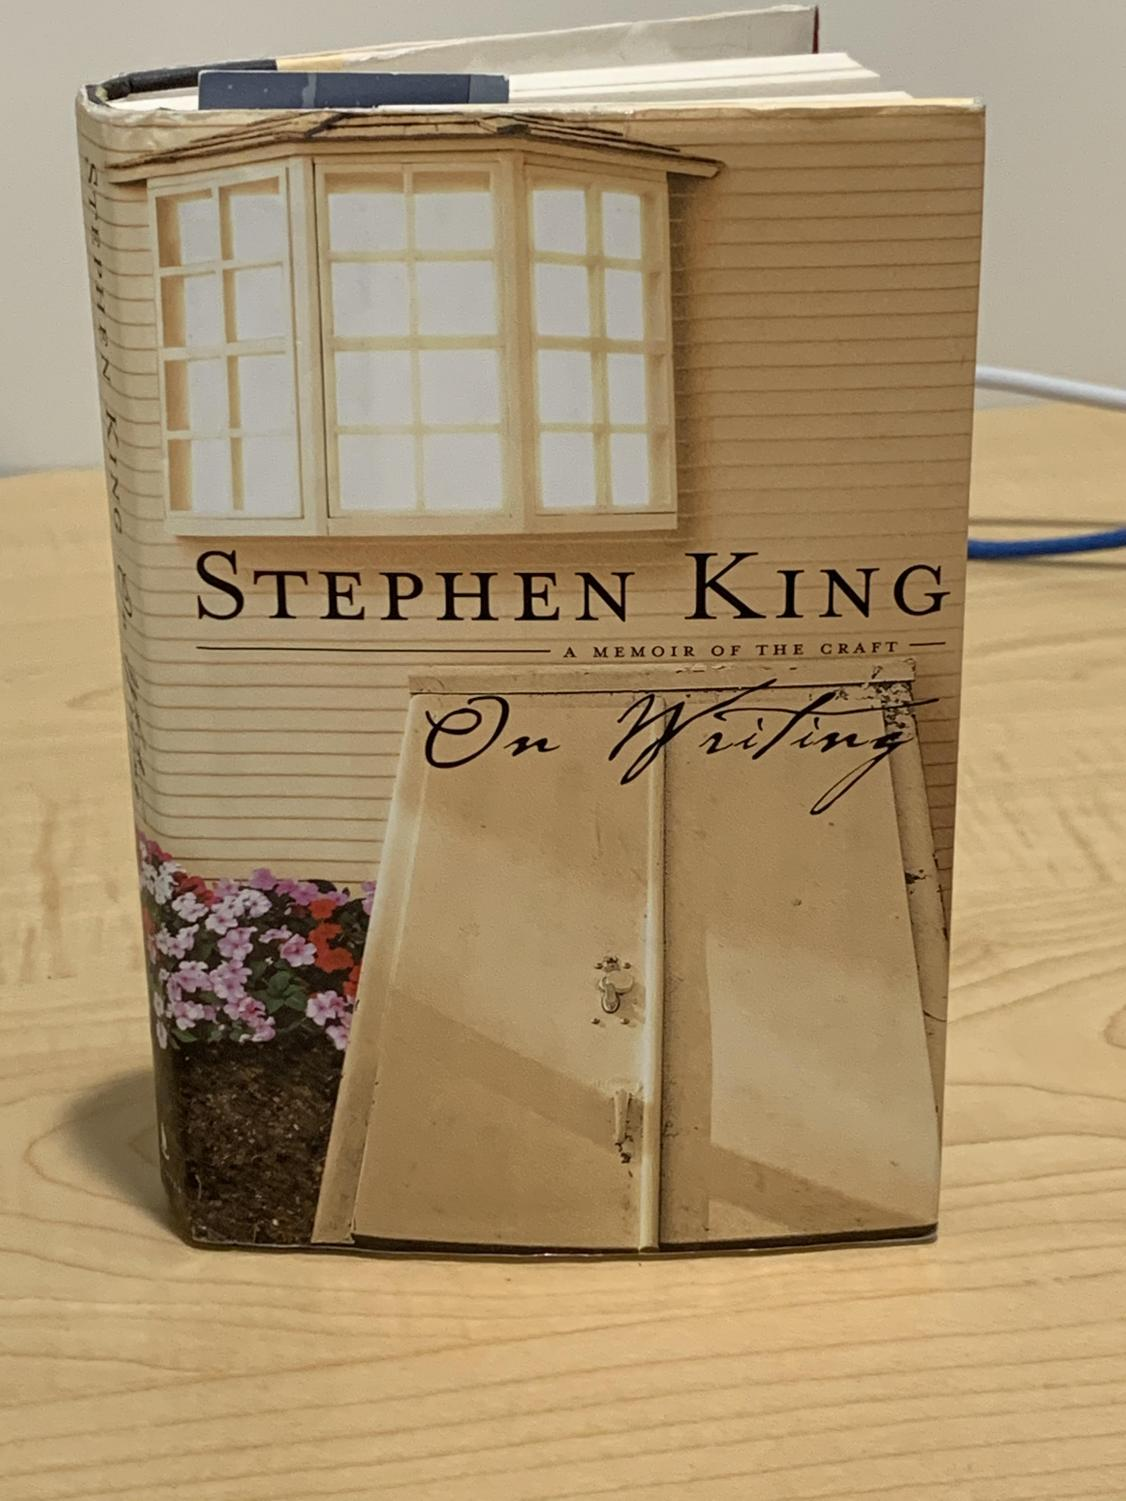 The cover of Stephen King's book